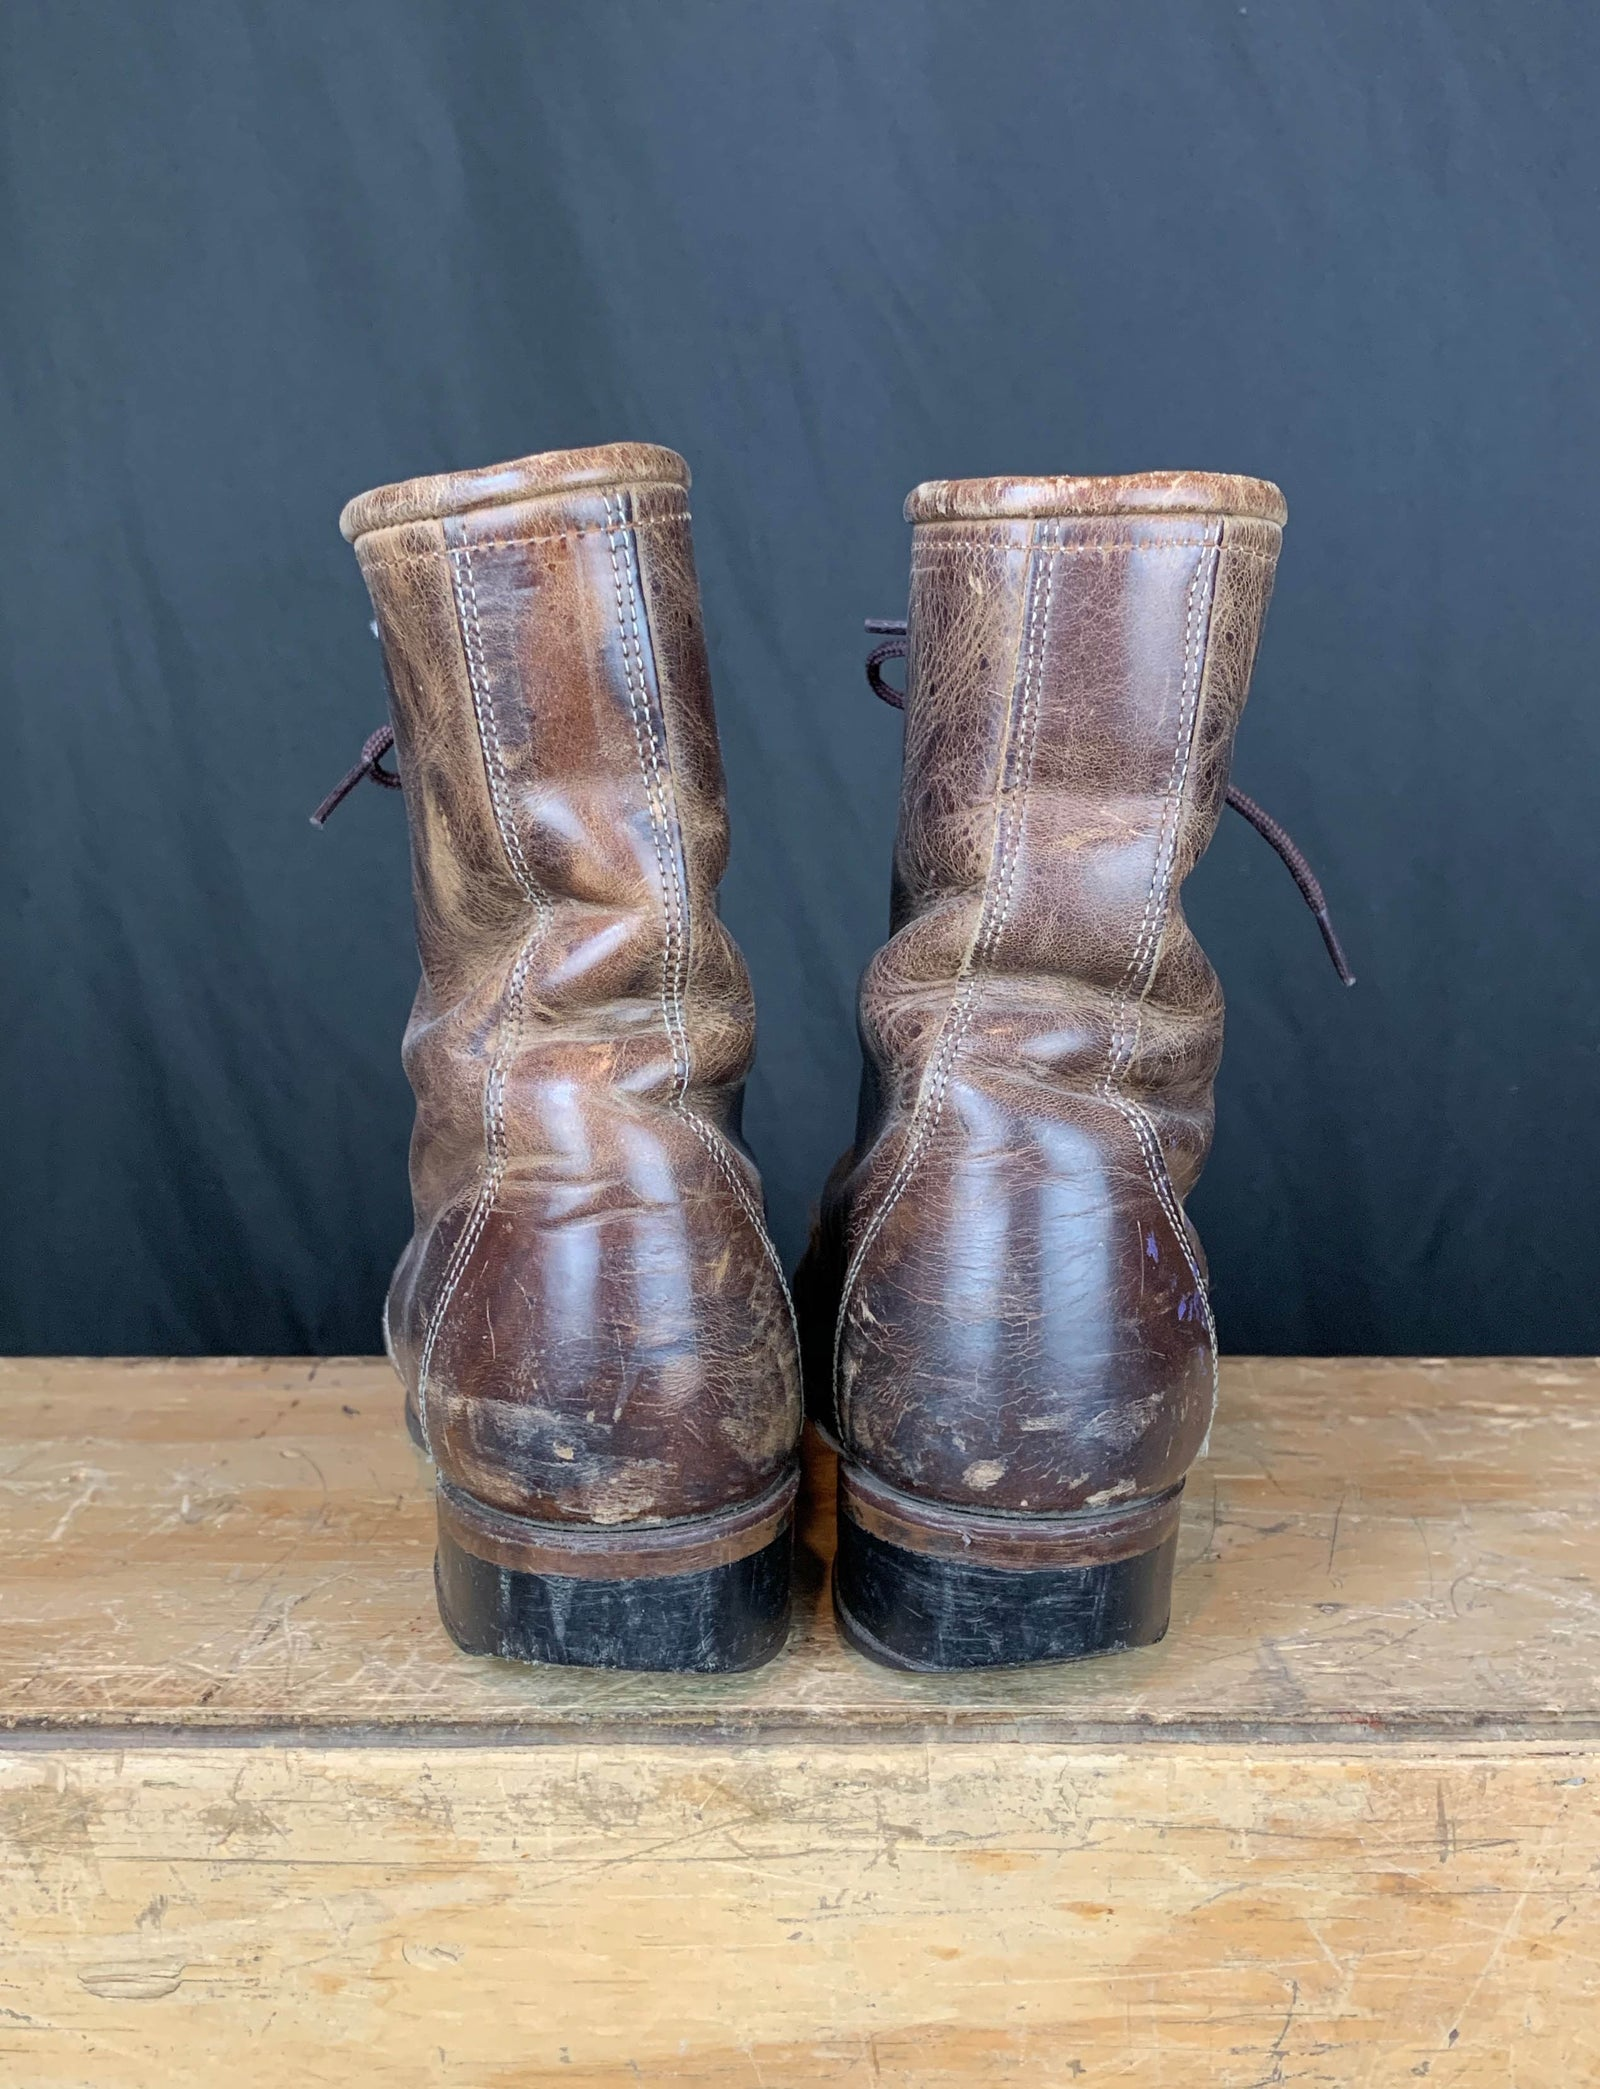 Women's Vintage Brown Leather Roper Boots - 5.5